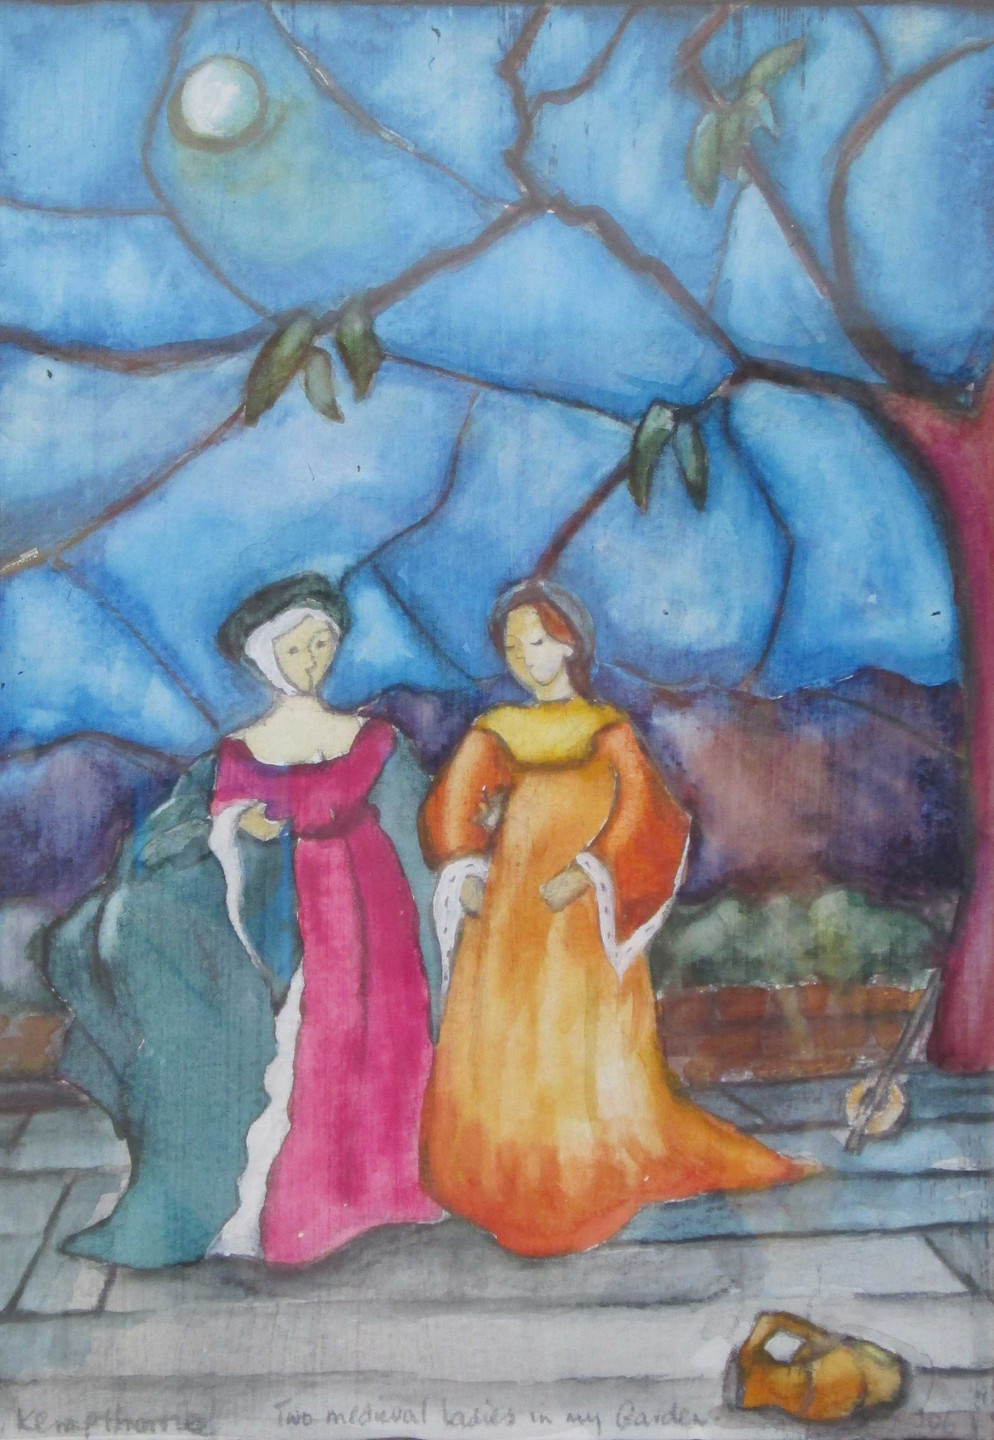 Two medieval ladies in my garden